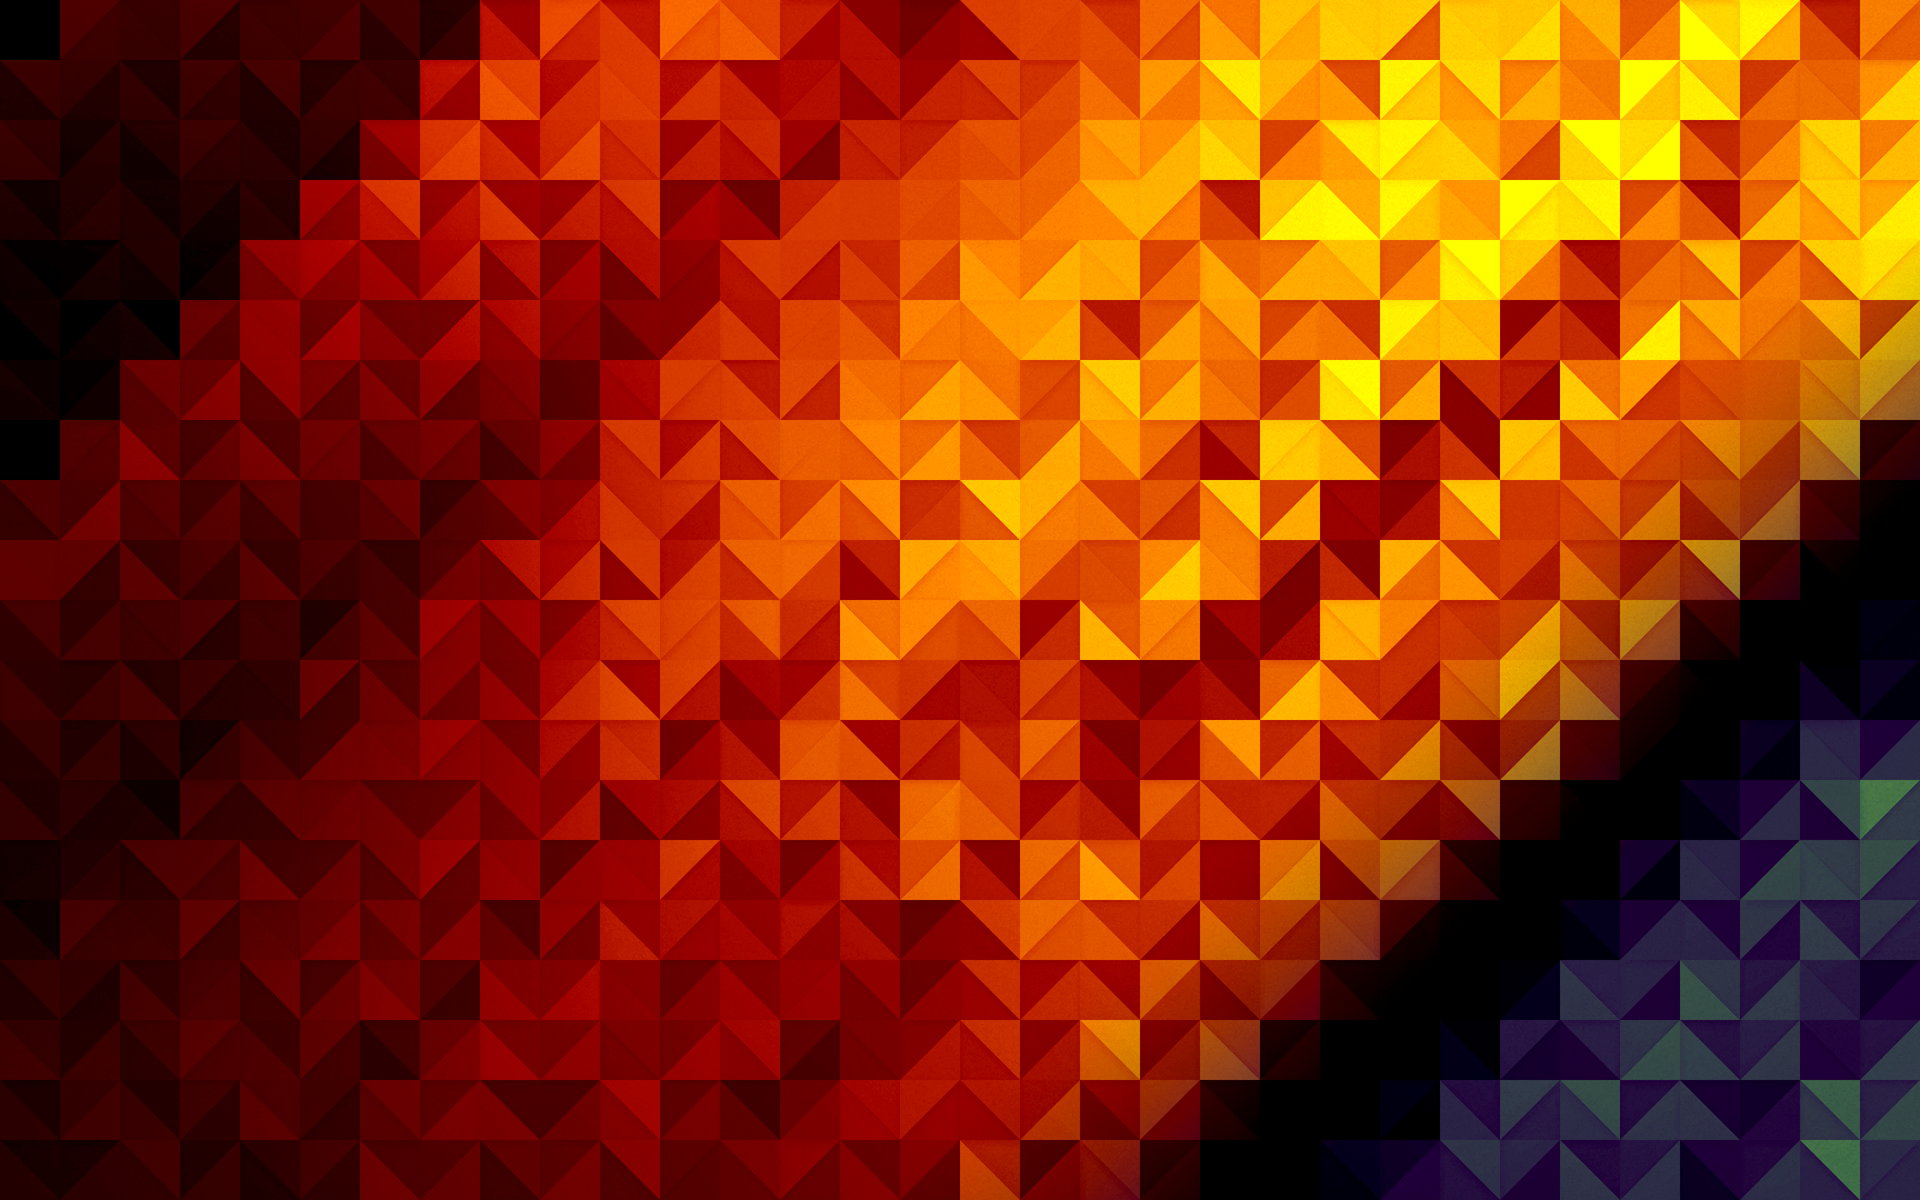 Psychedelic color colors pattern wallpaper 1920x1200 for Cool pattern wallpaper